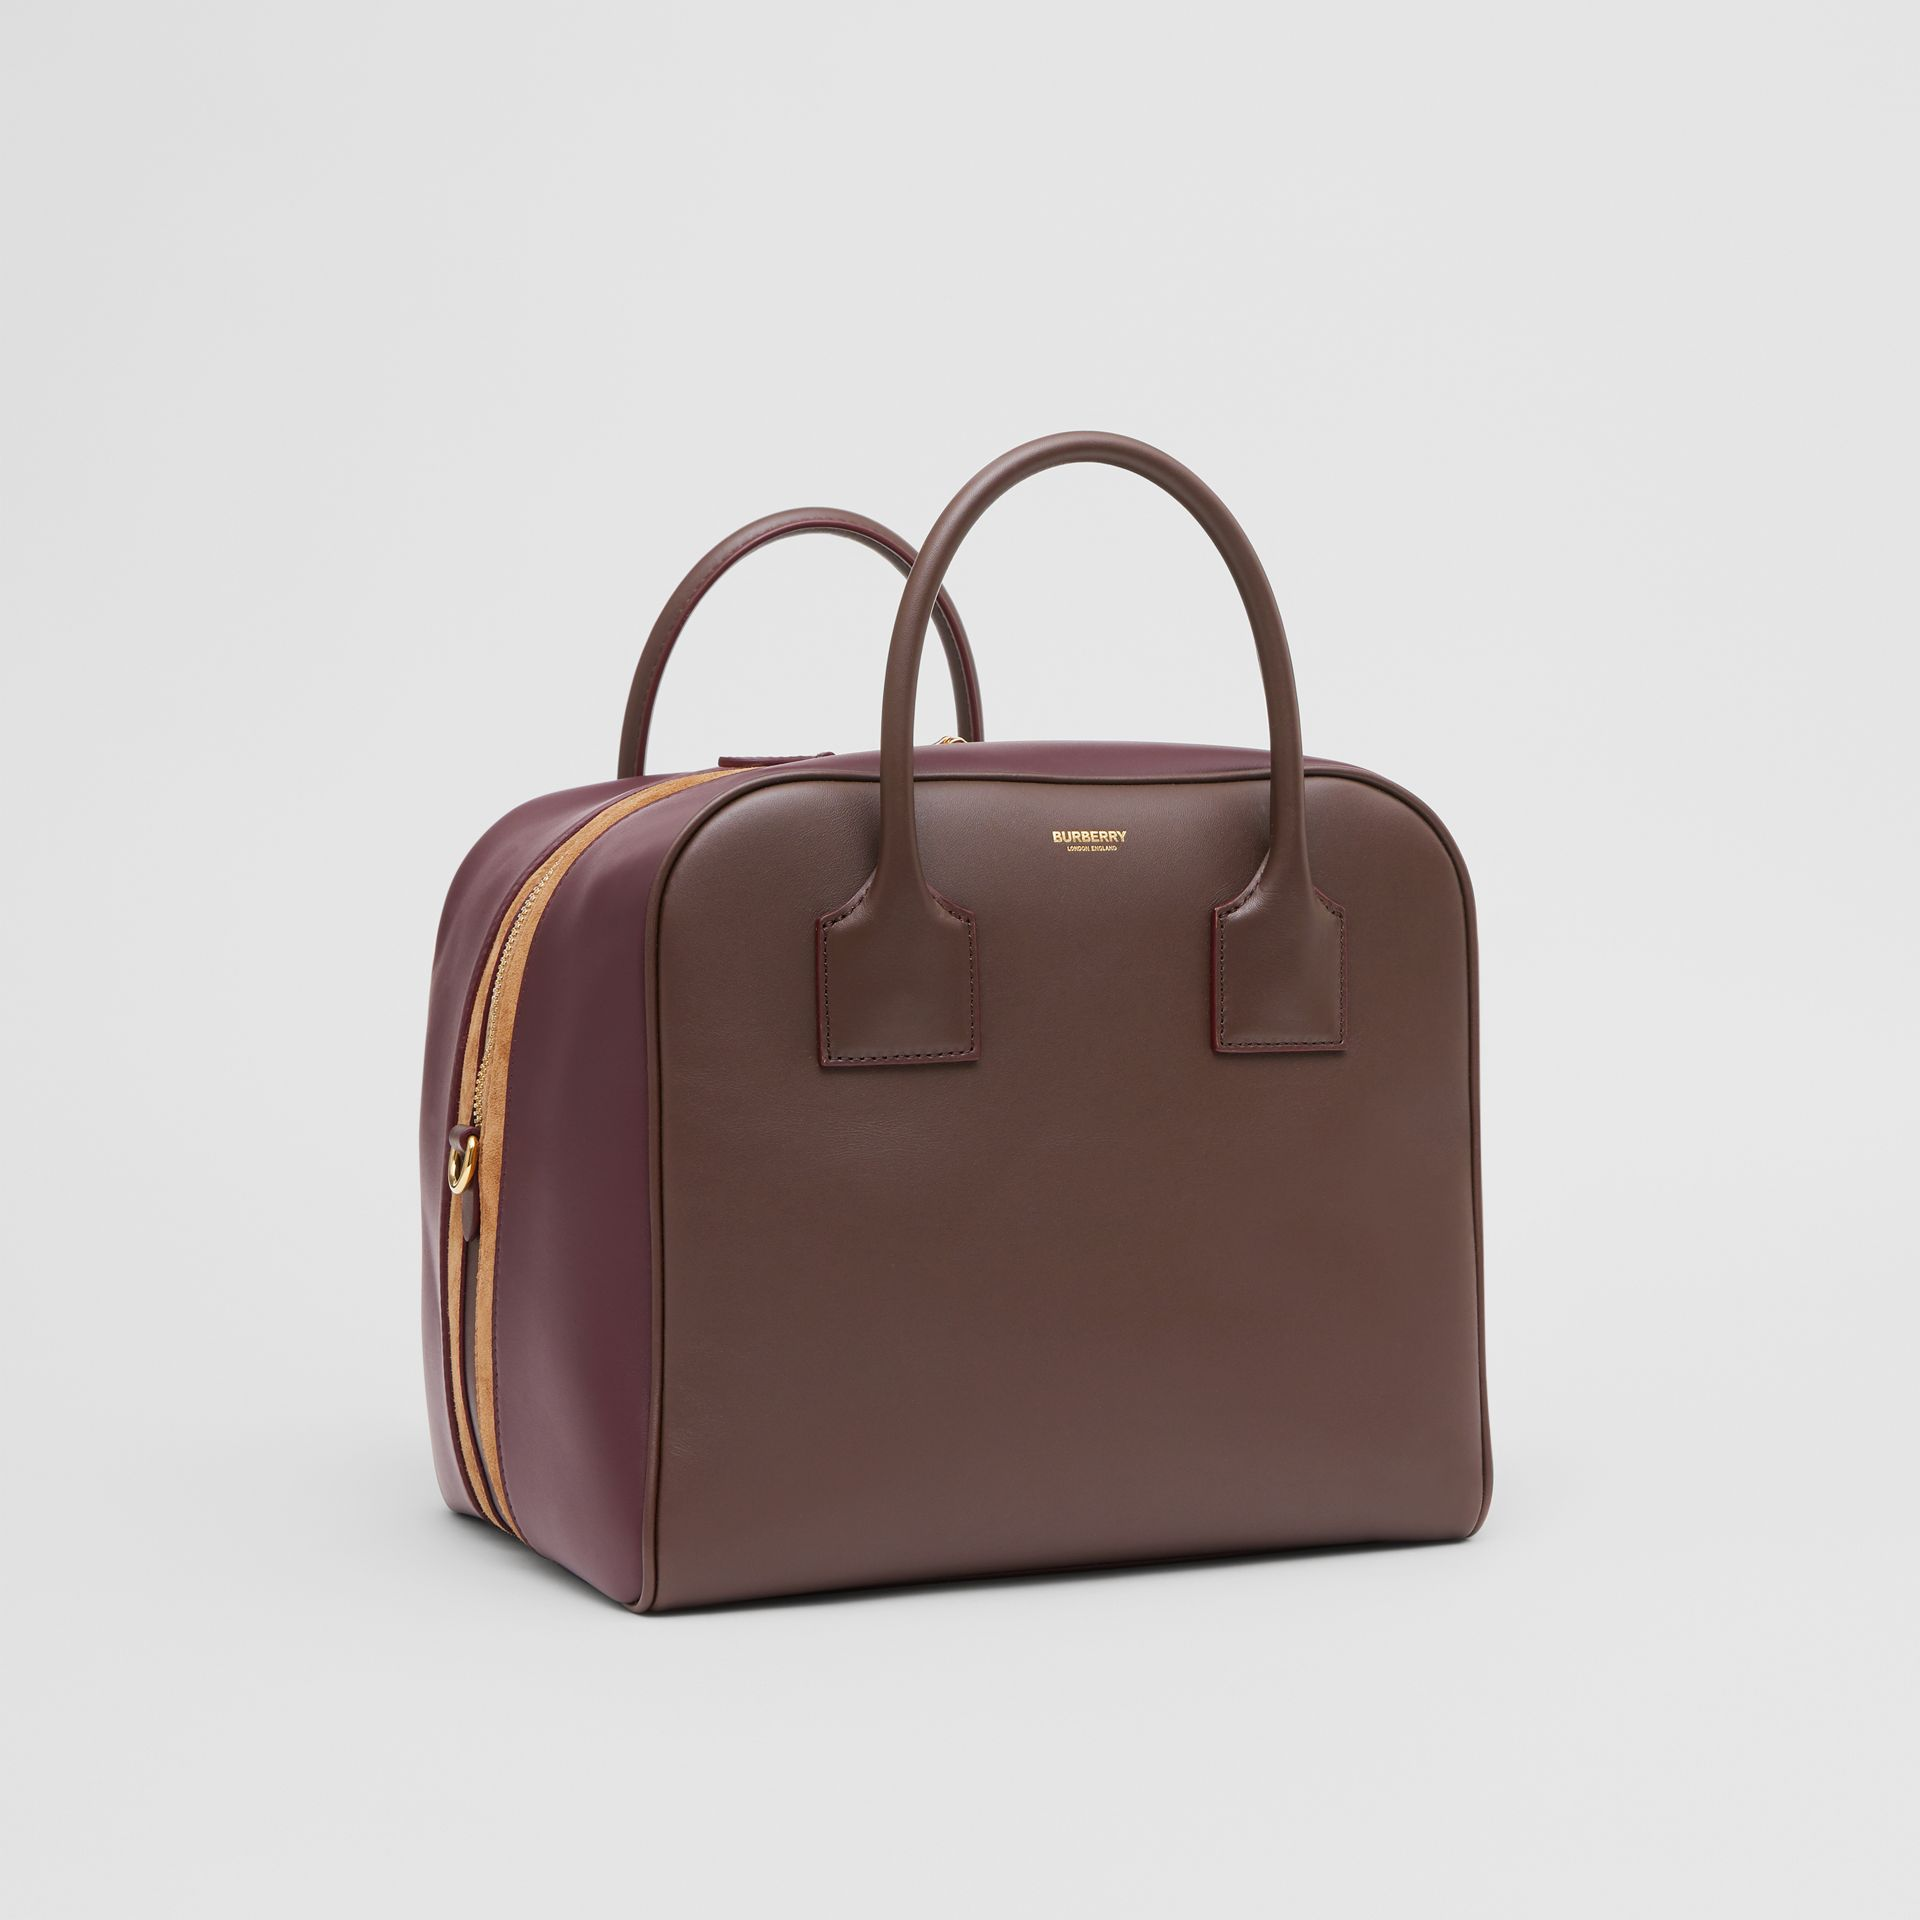 Medium Leather and Suede Cube Bag in Mahogany - Women | Burberry - gallery image 6